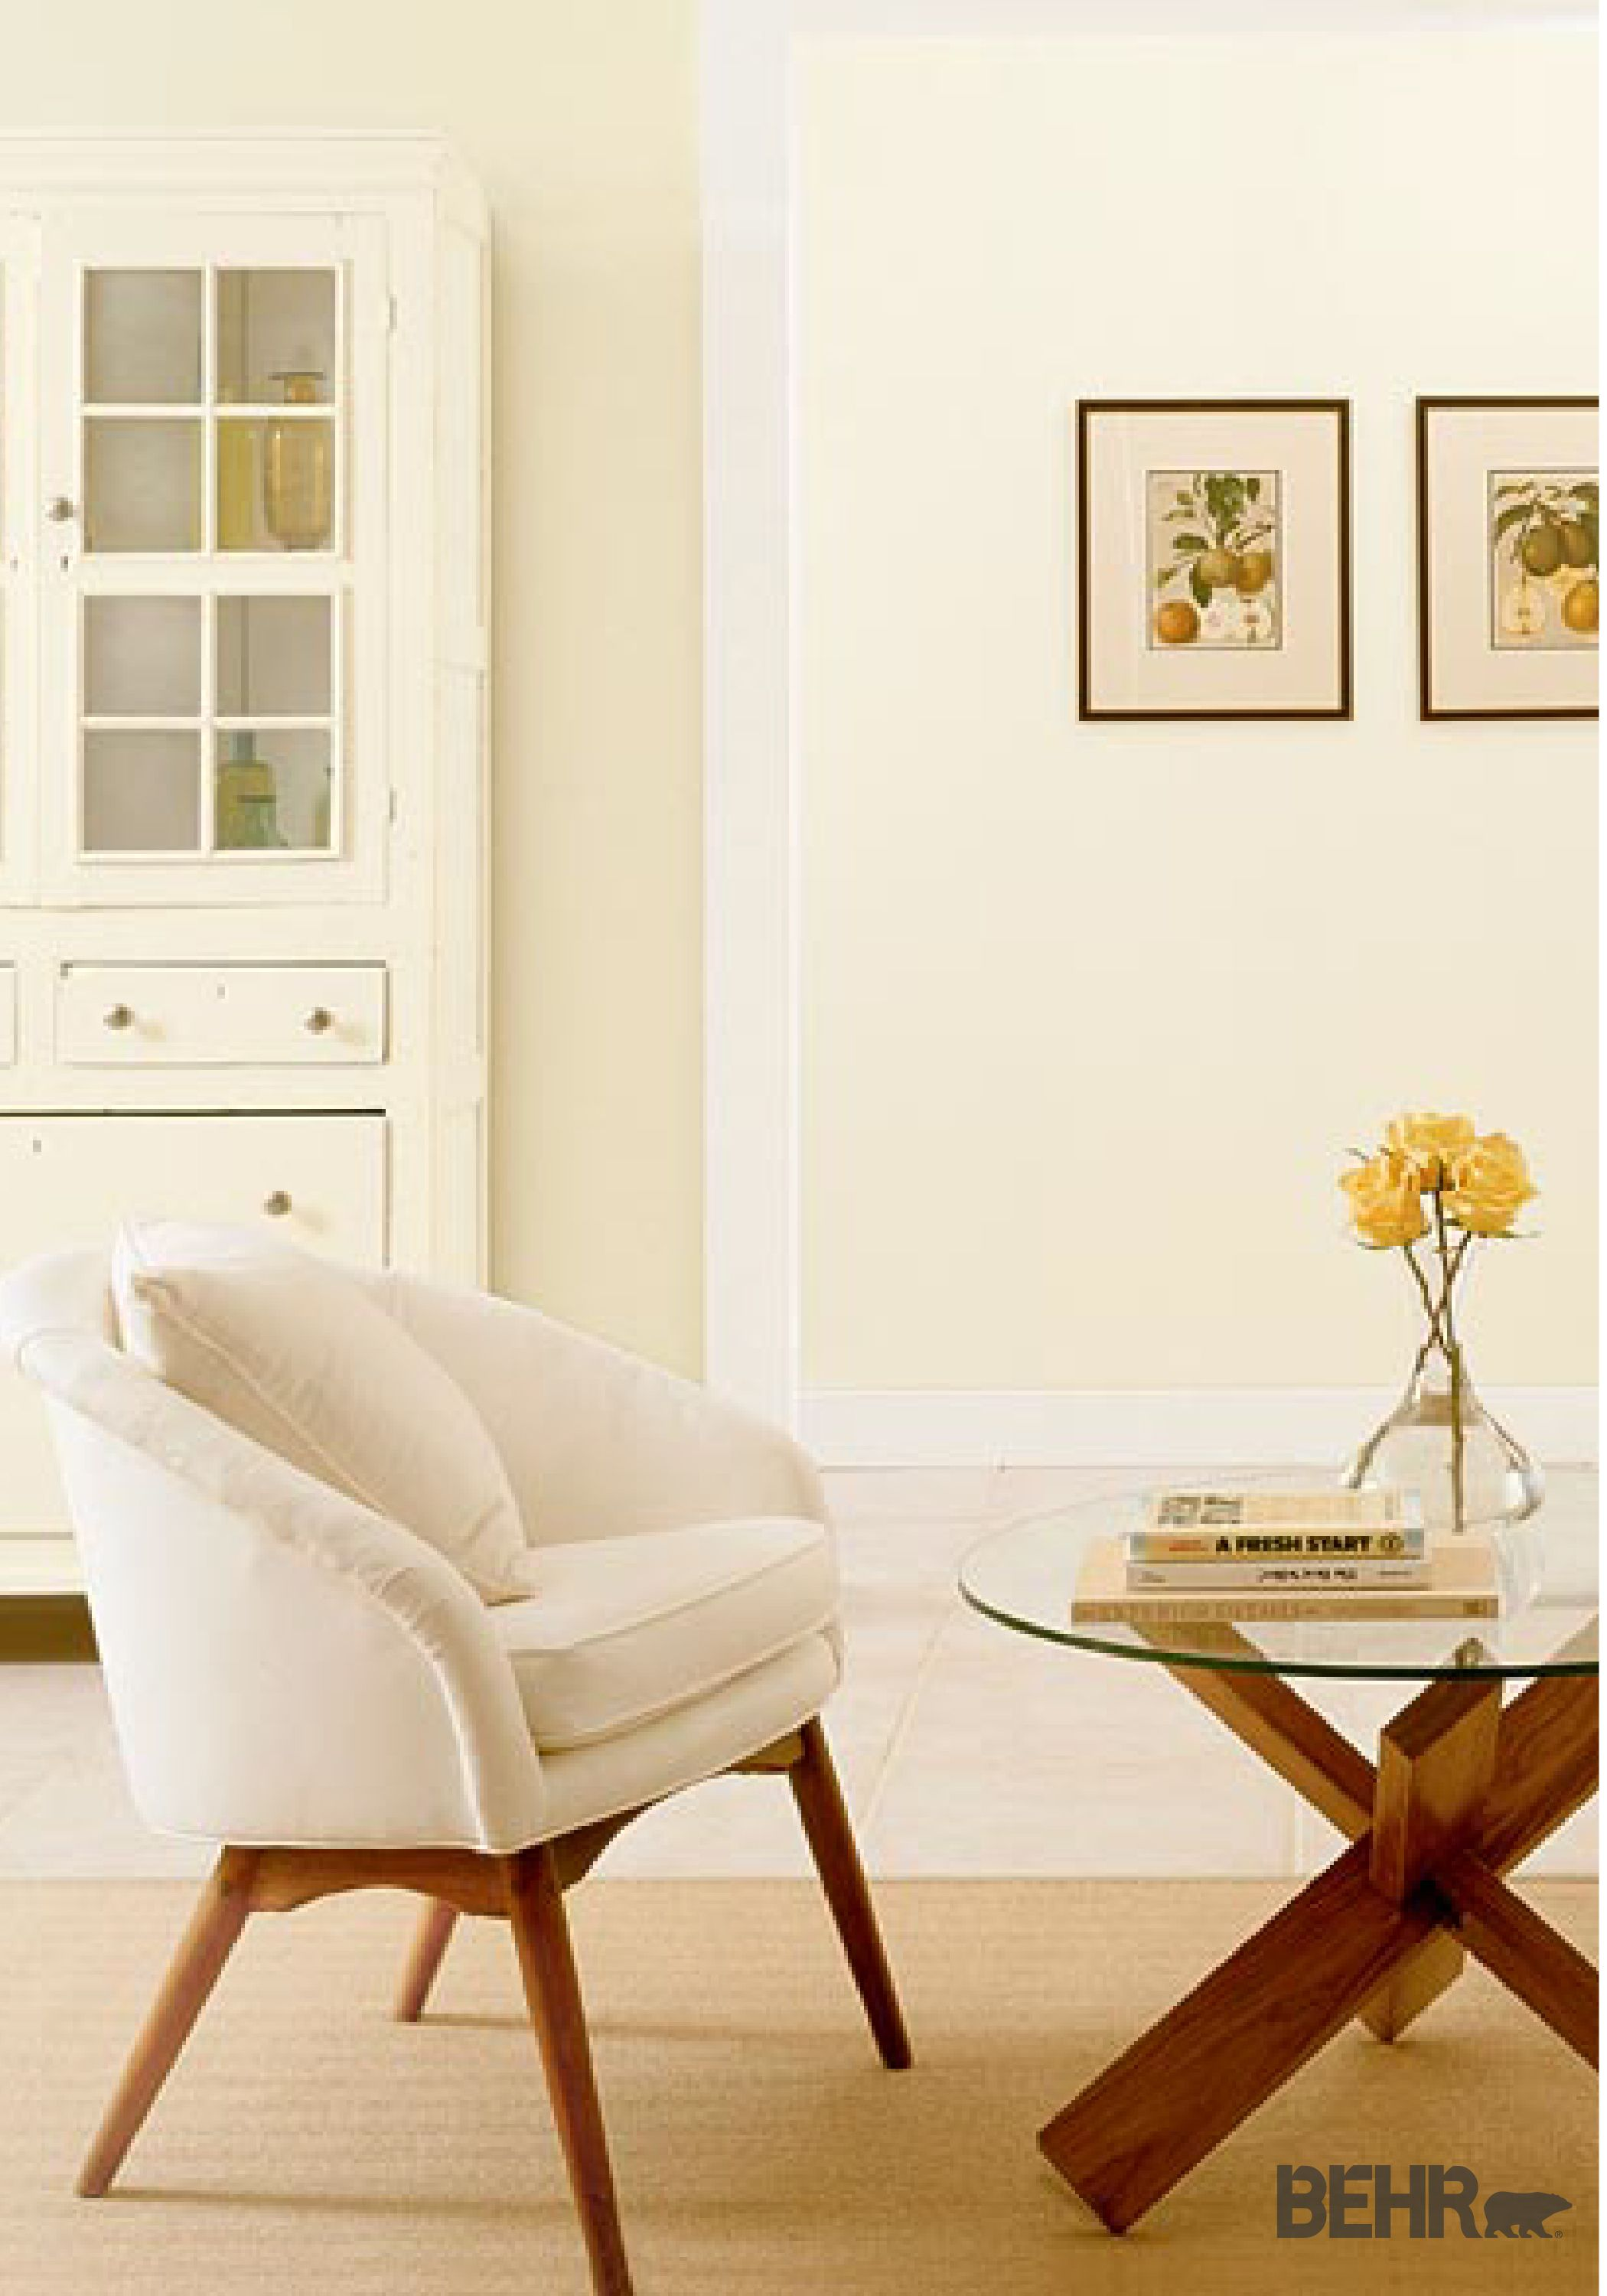 Yellow Painted Room Design Inspiration And Project Idea Gallery Behr Yellow Walls Living Room Yellow Living Room Paint Yellow Living Room #pale #yellow #walls #living #room